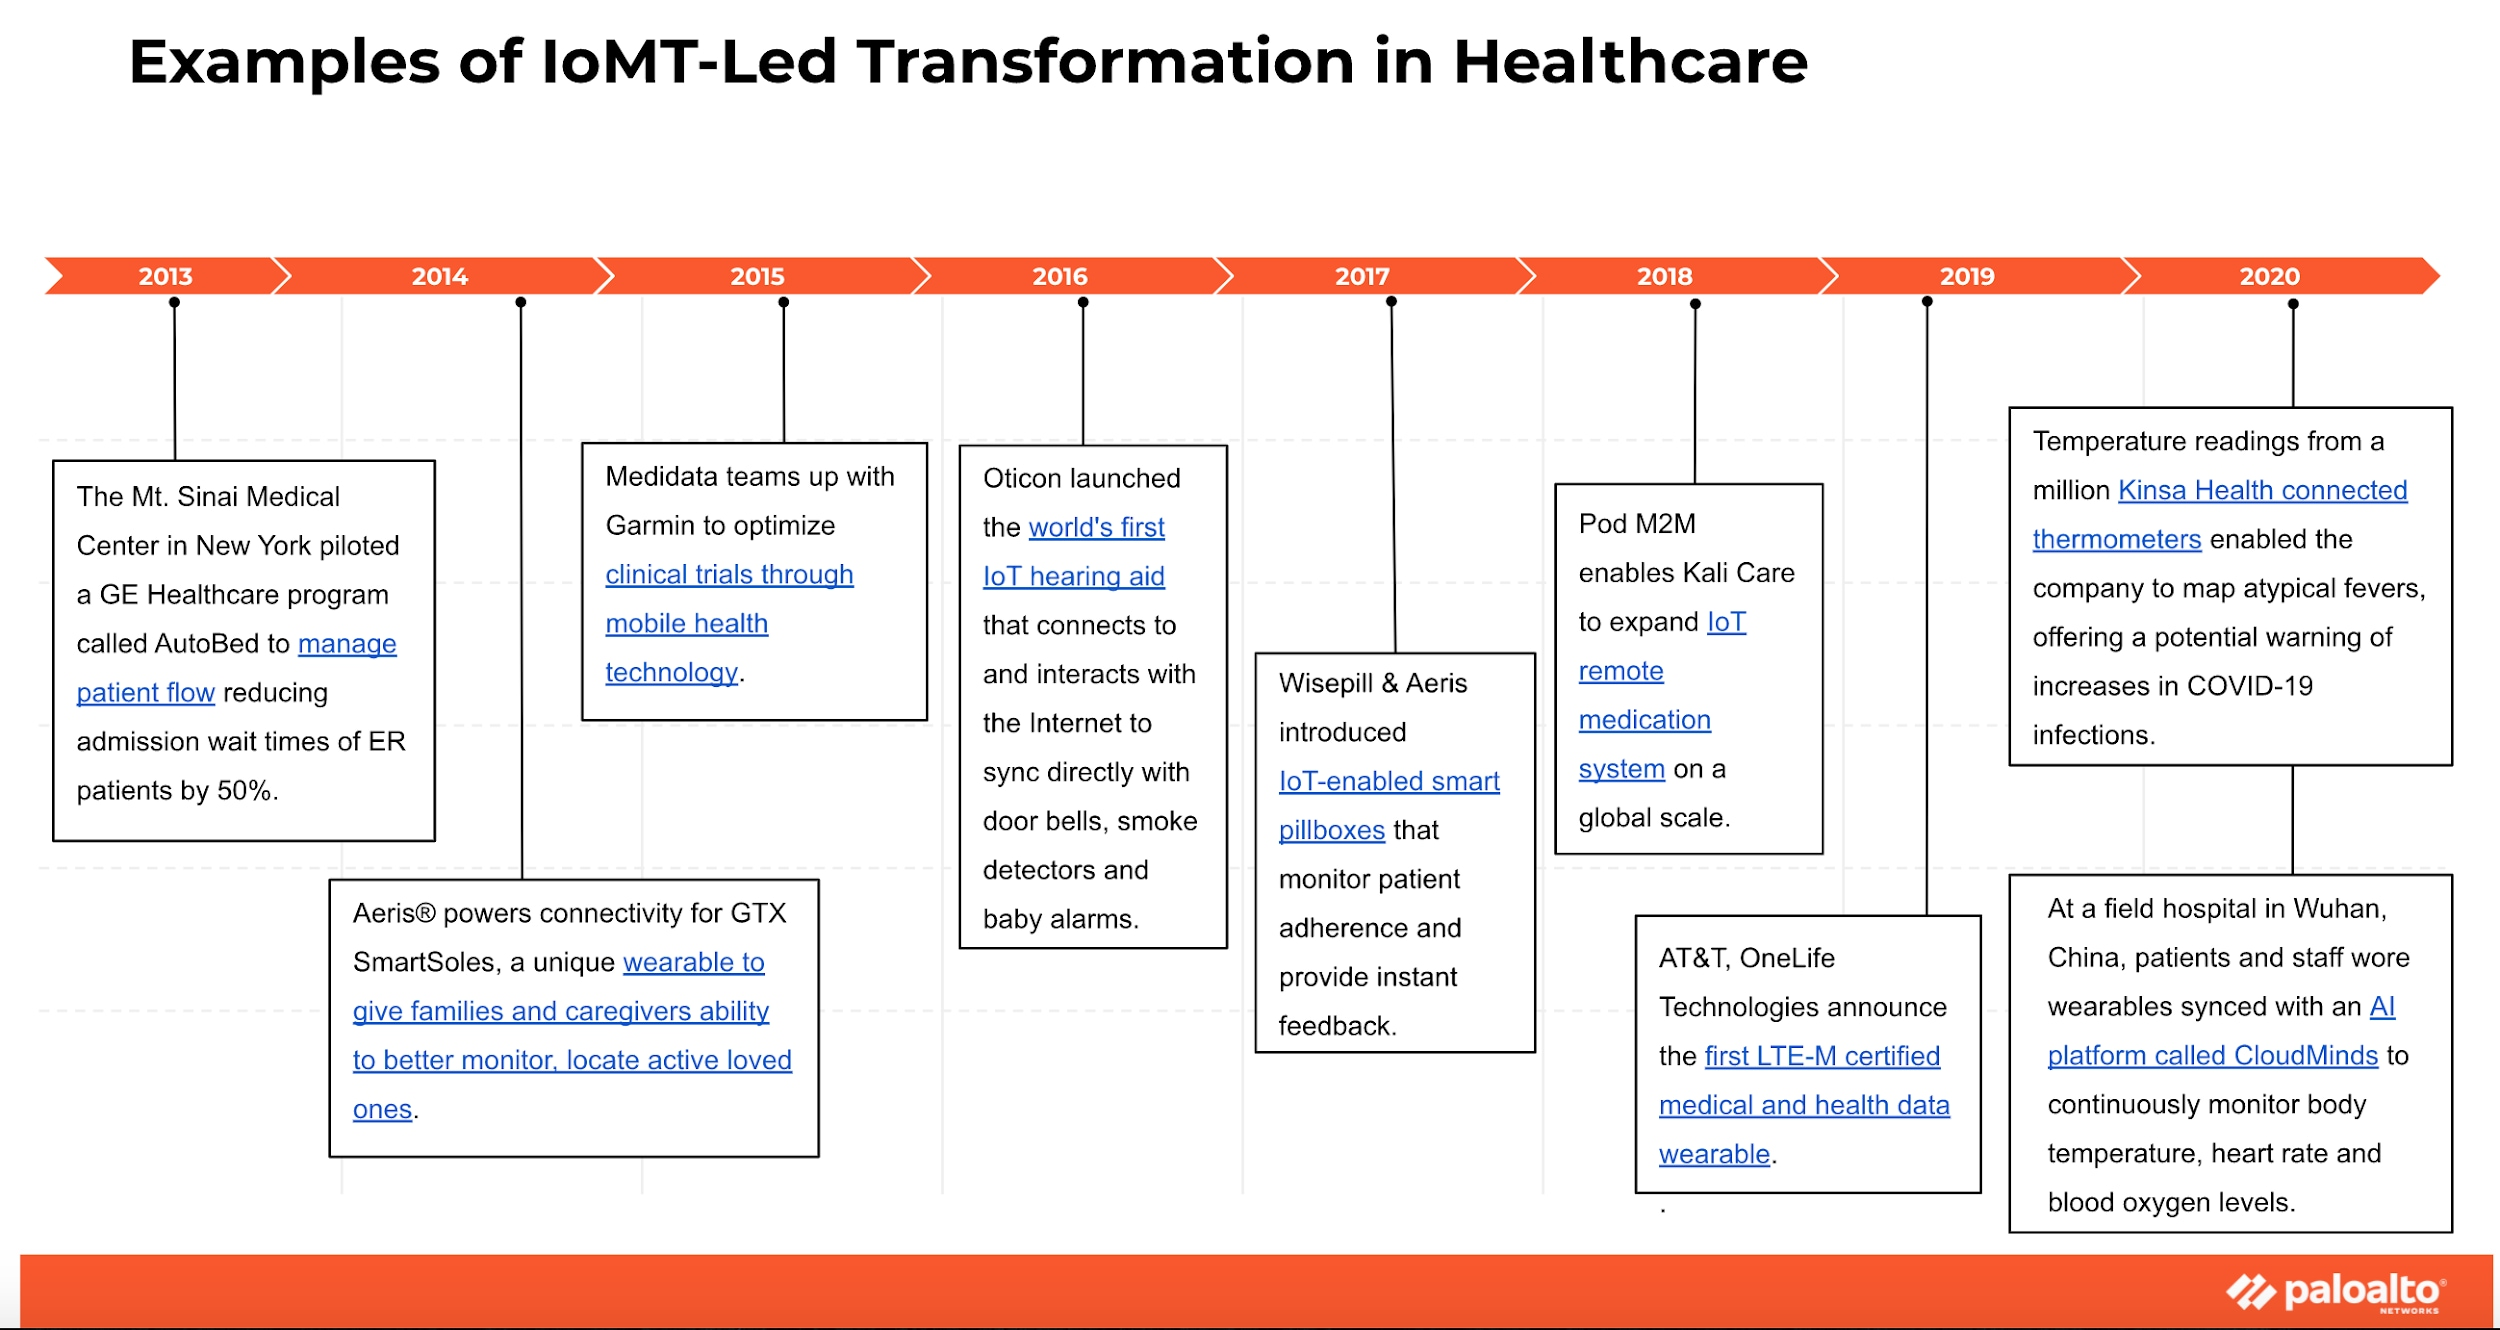 Examples of IoMT-Led Transformation in Healthcare